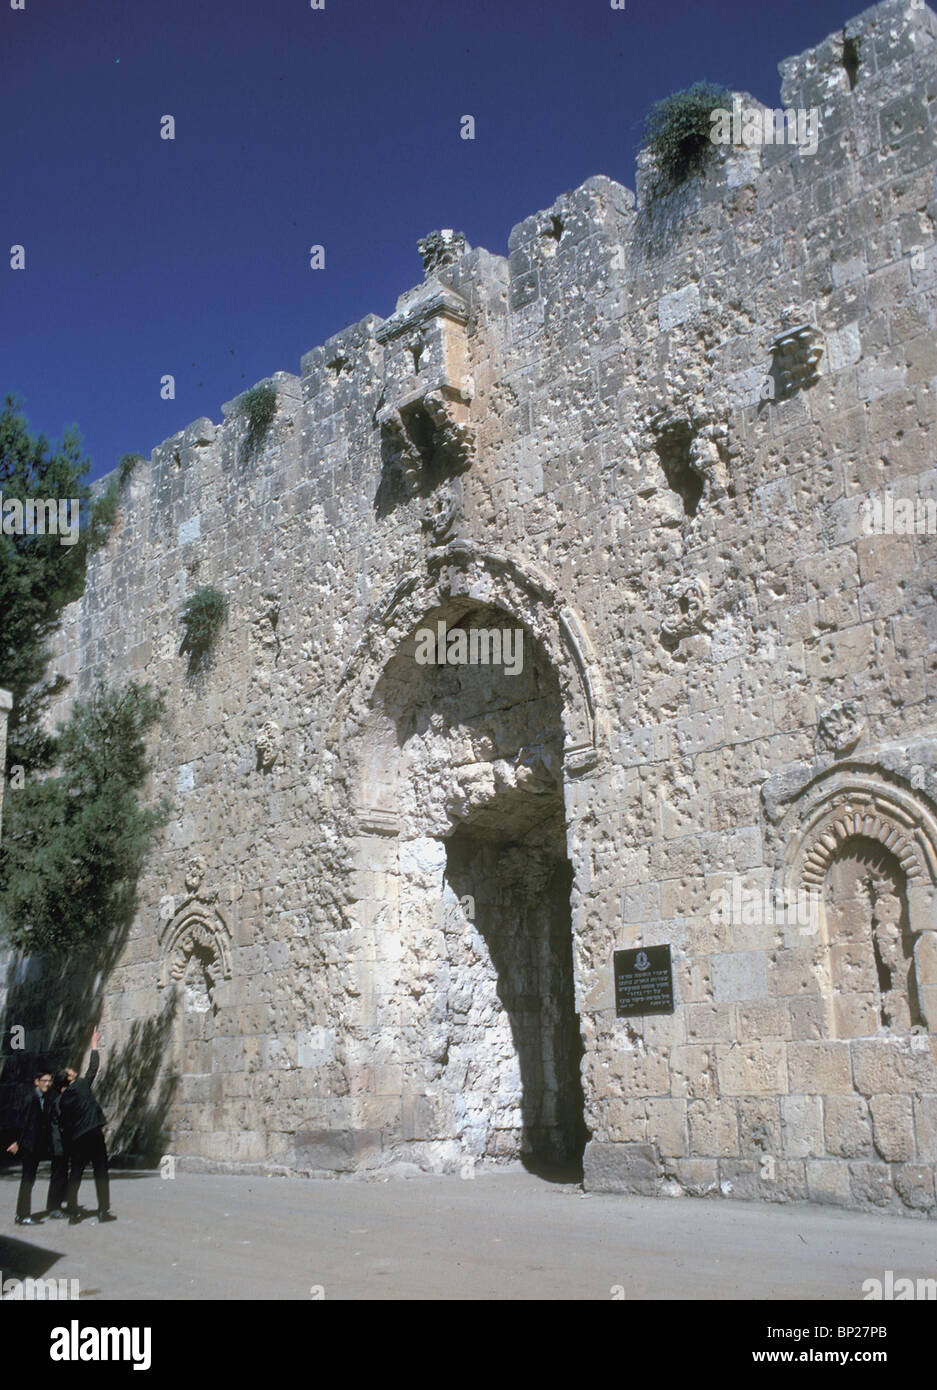 JERUSALEM - THE ZION GATE, SOUTHERN ENTRANCE TO THE CITY FROM MT. ZION. THE GATE WAS DAMAGED IN THE 1948 WAR OF - Stock Image